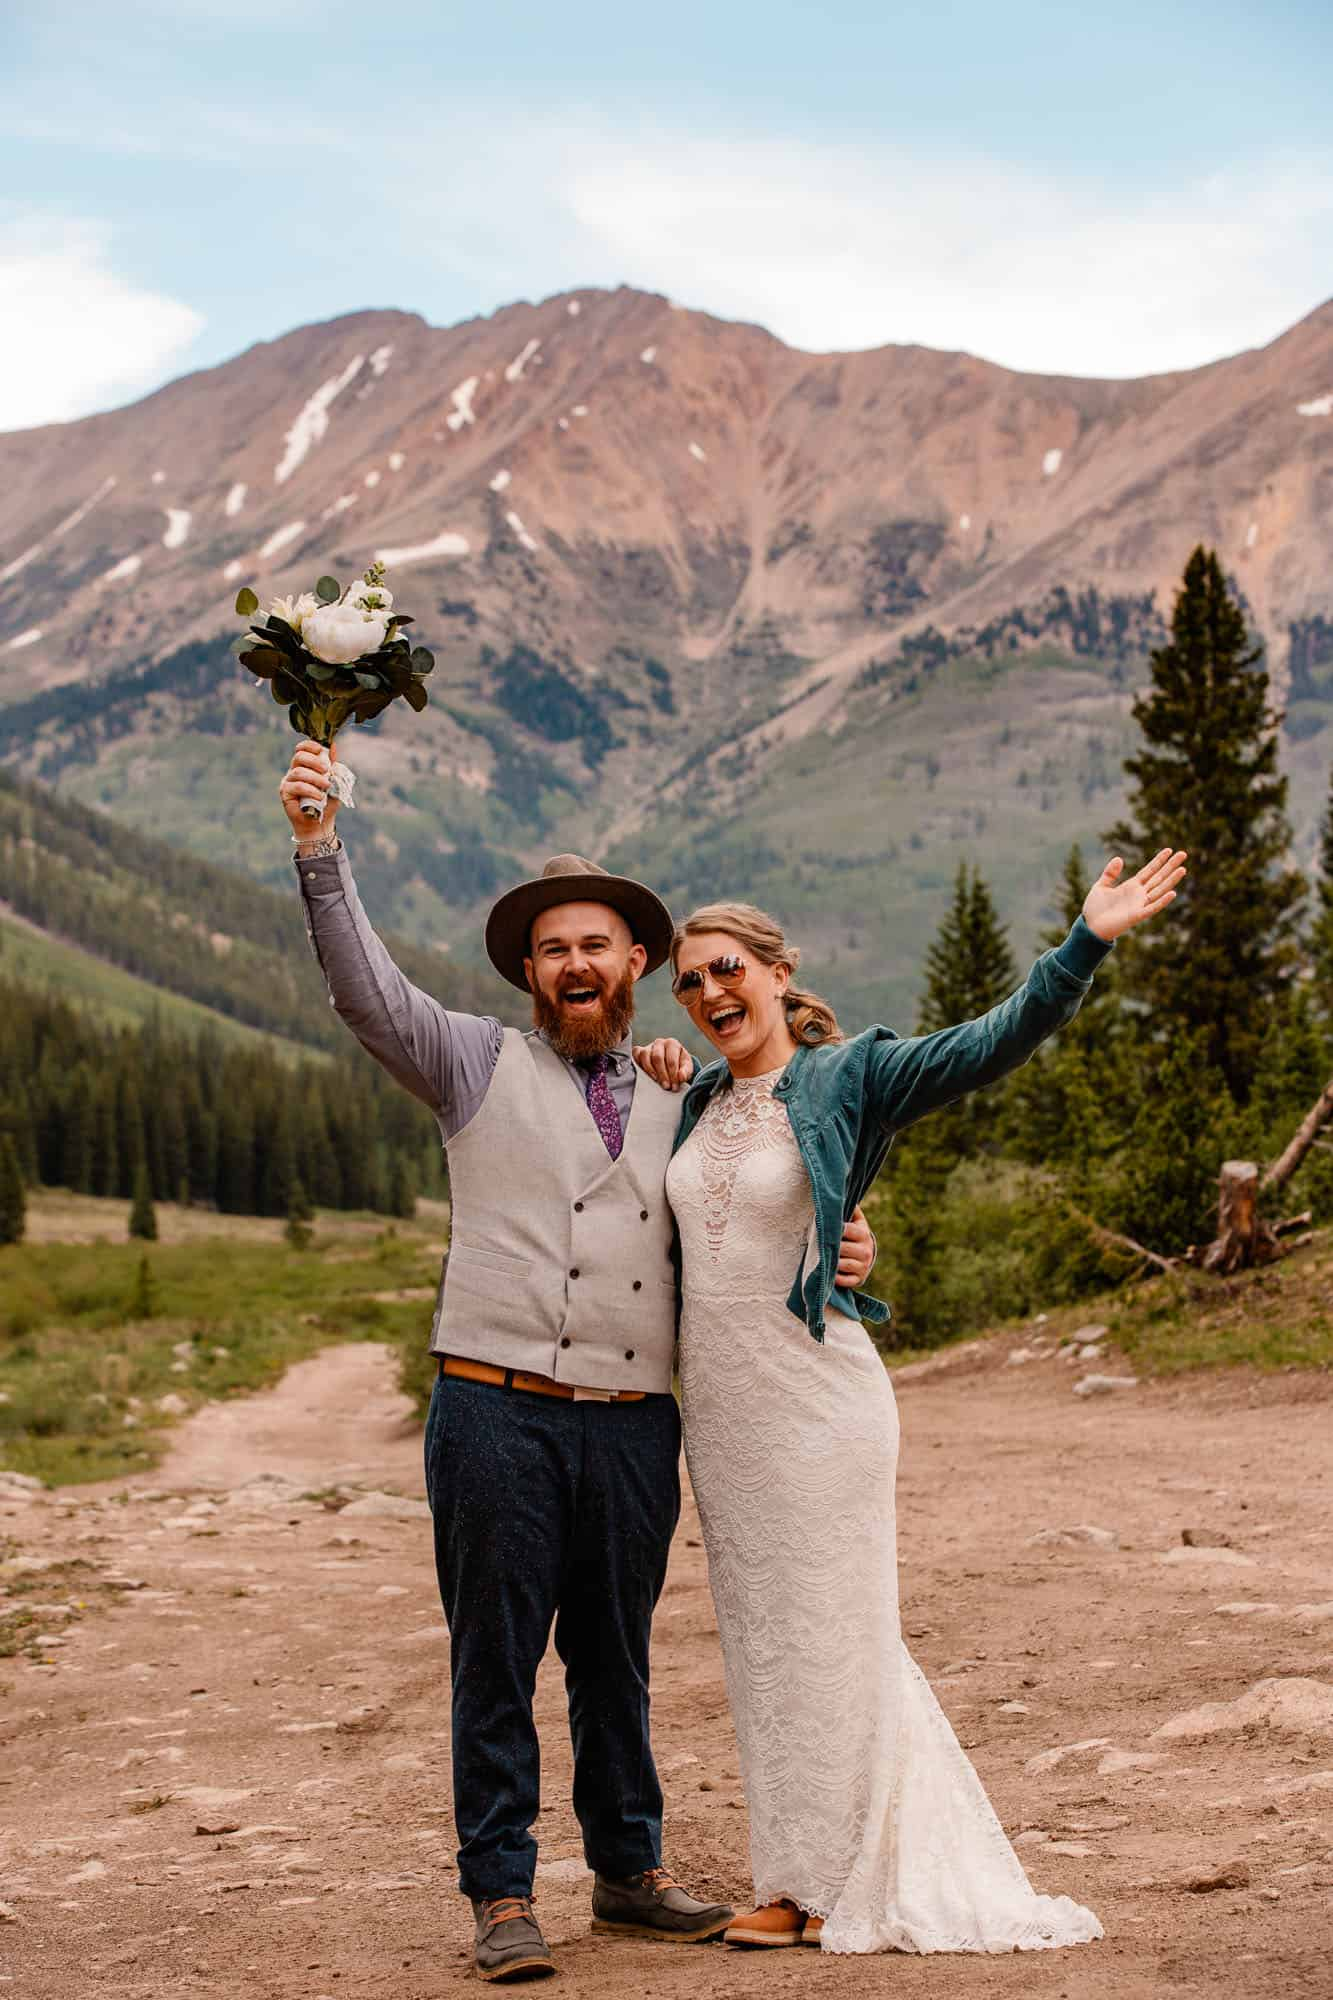 couple in an epic mountain location on wedding day